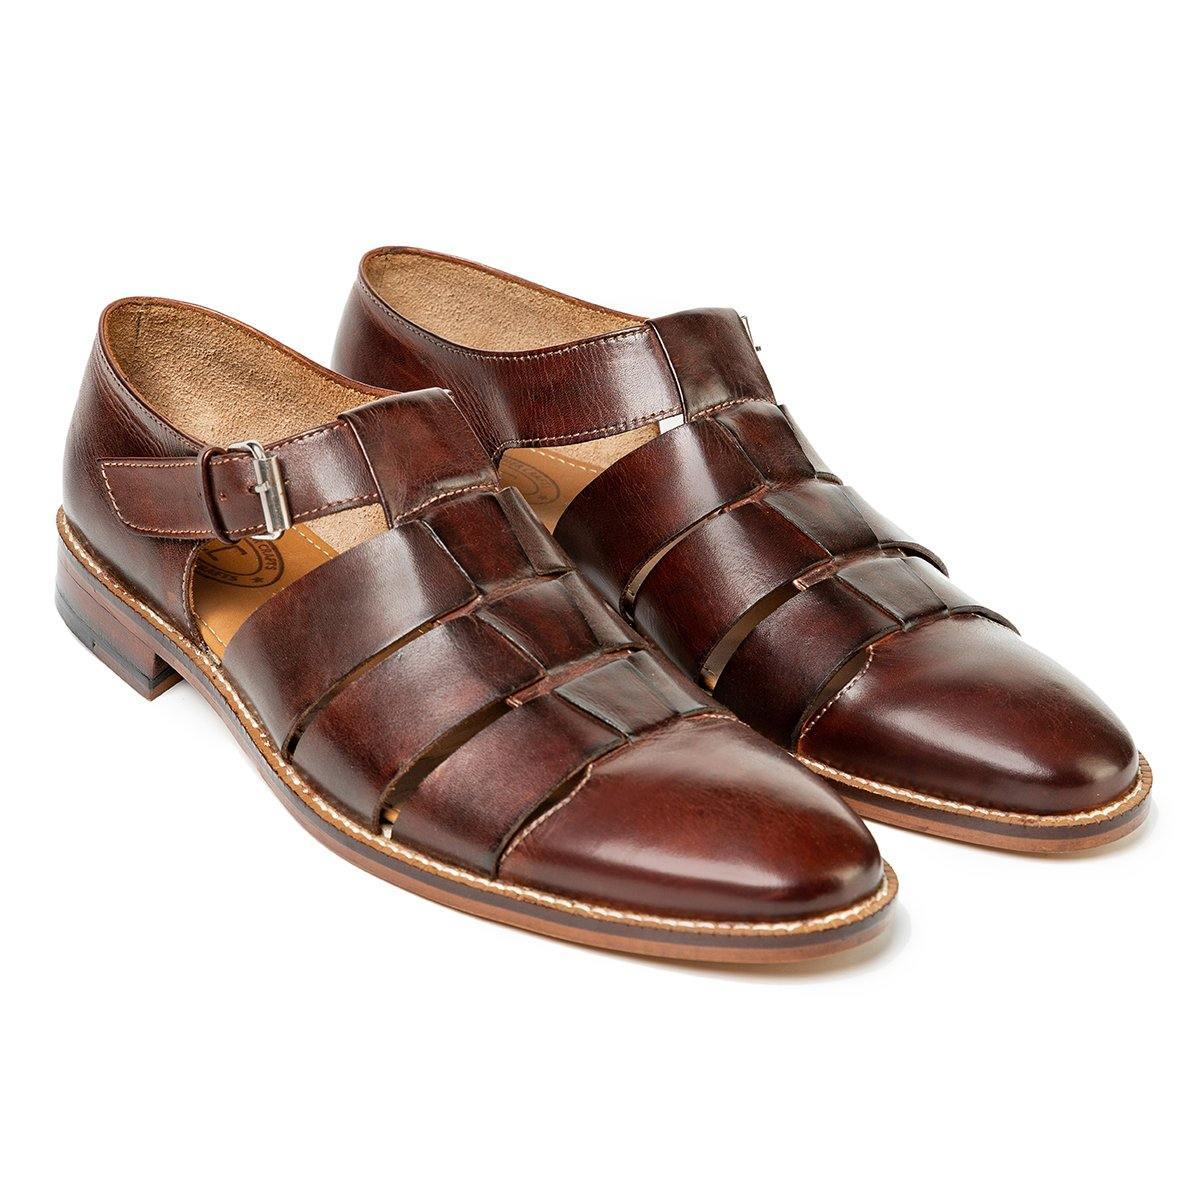 Roman Cage Sandals in Tobacco - TLC - The Leather Crafts